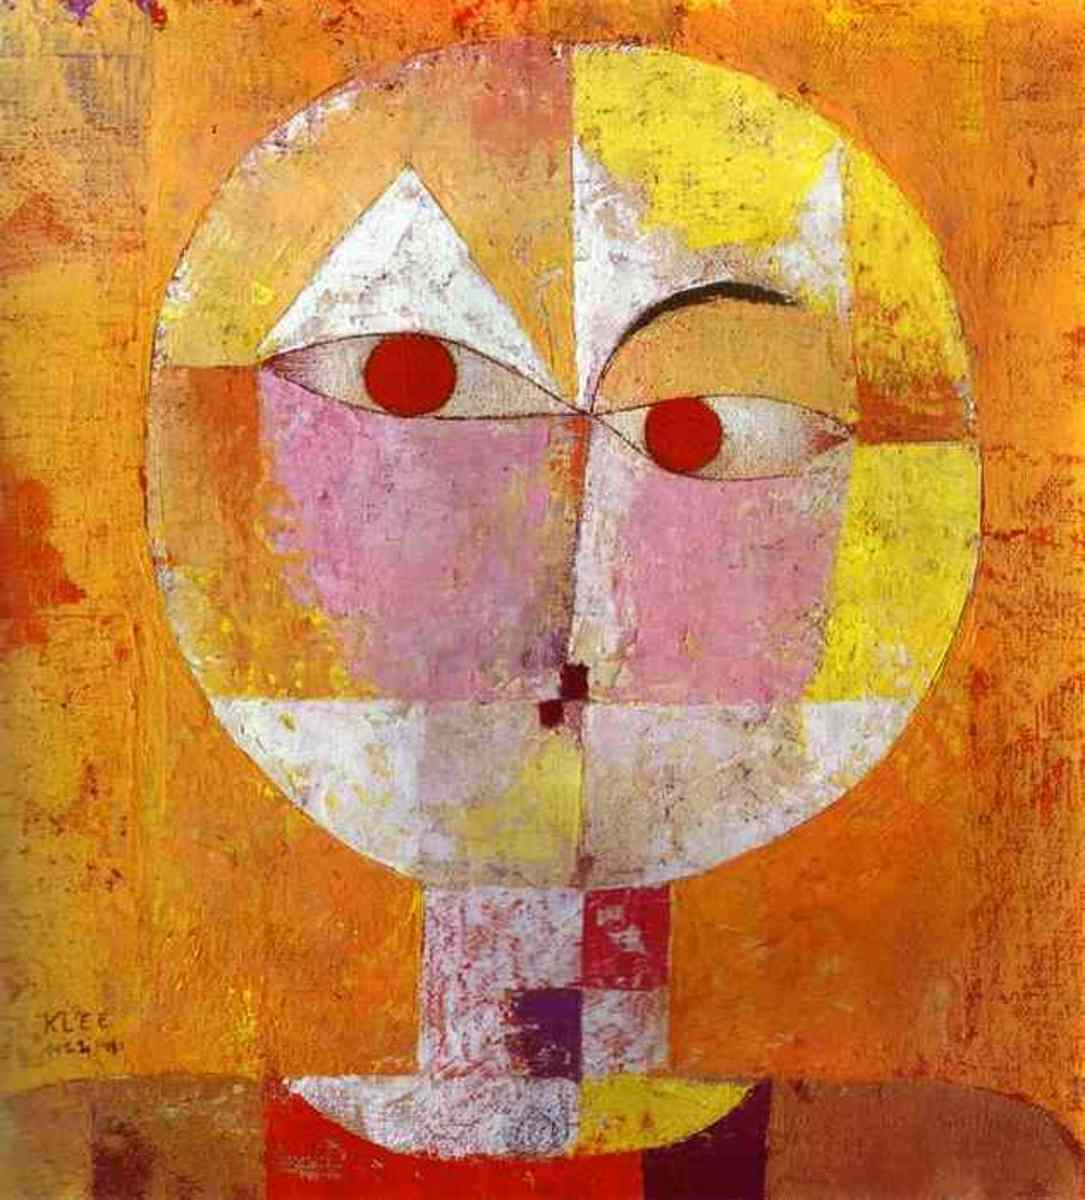 Paul Klee's abstract figure, Senecio (Head of a Man) (1922). Abstracts and figures are both types of art that sell well.